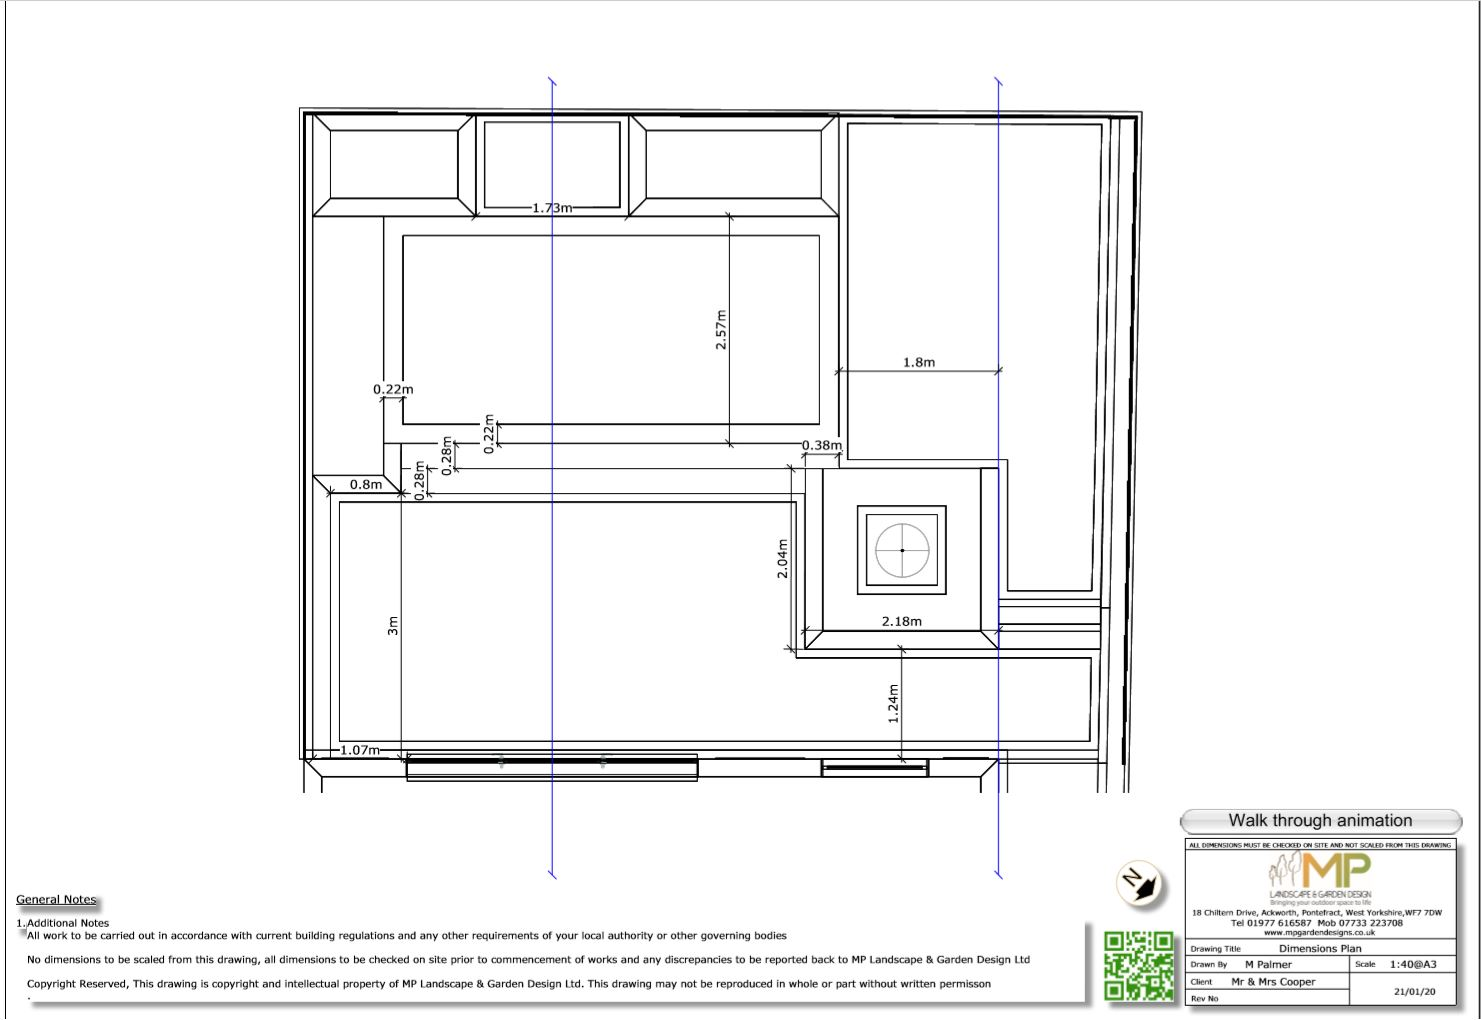 4, Dimensions  plan for a rear garden in Pontefract.